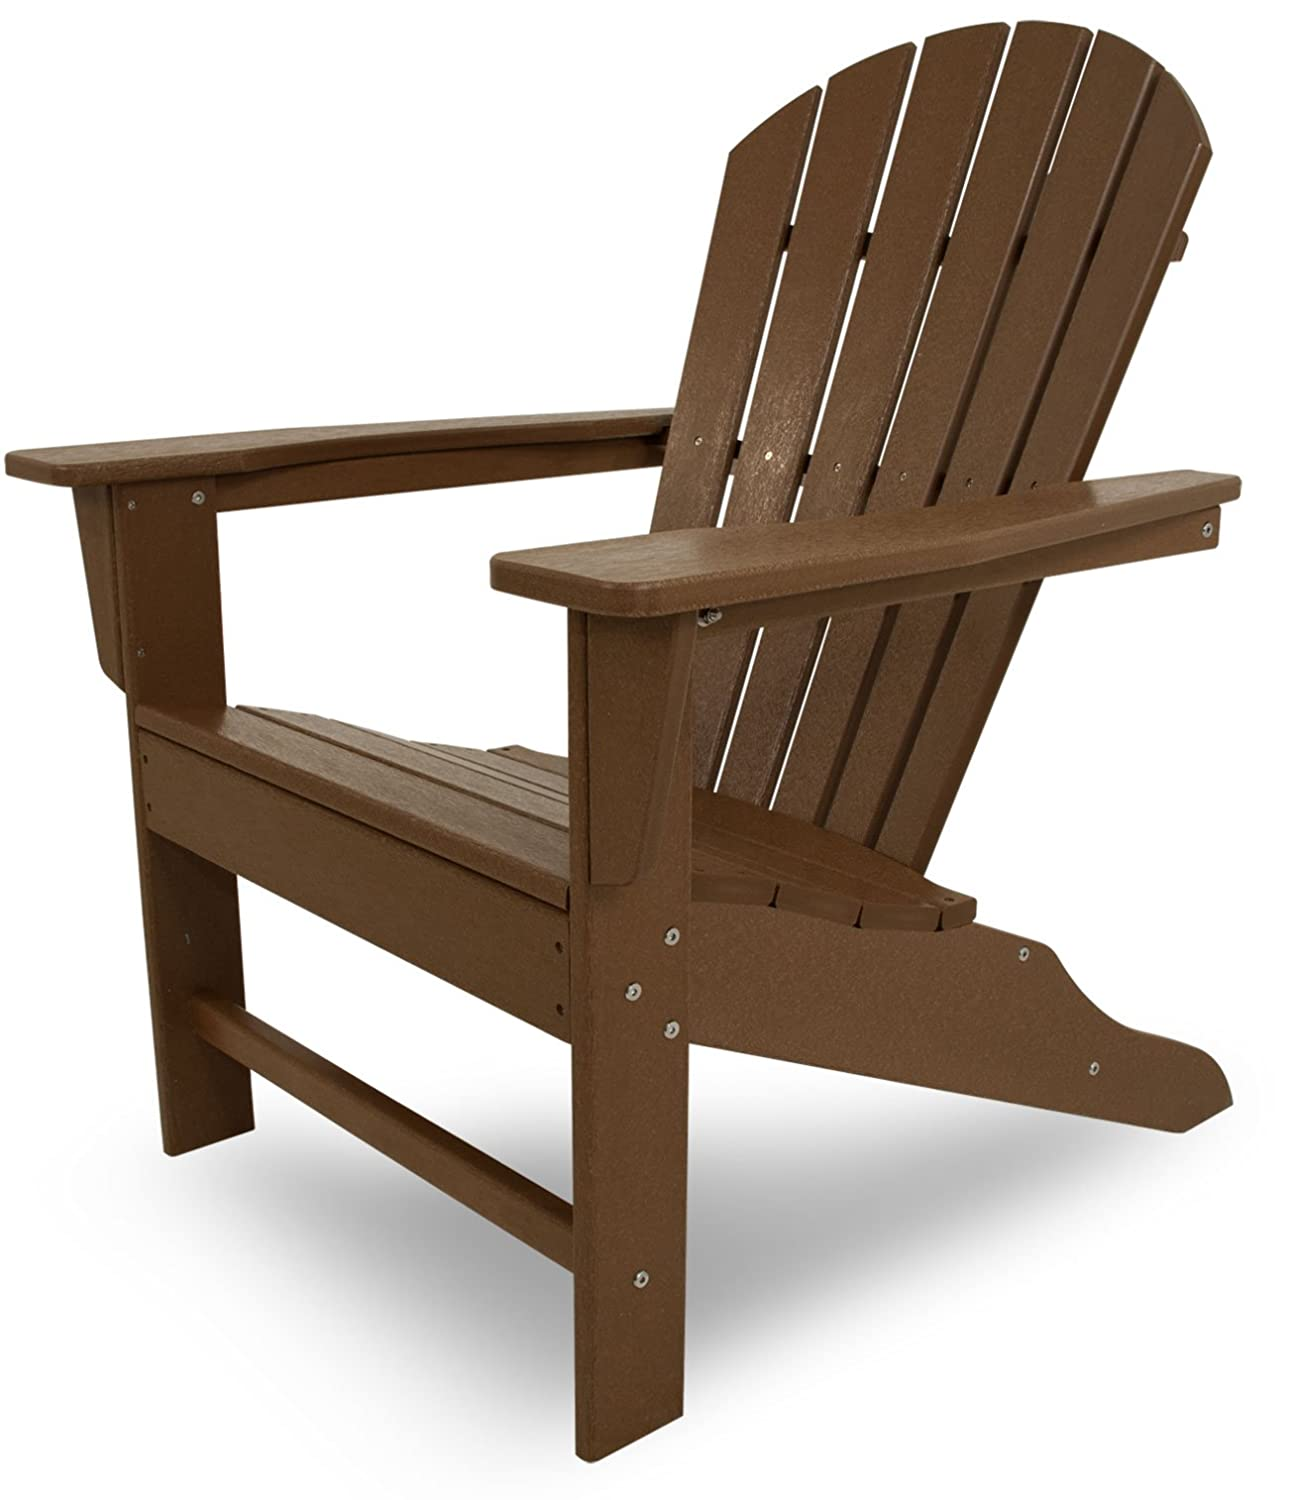 Amazon.com: POLYWOOD South Beach Adirondack, sillón ...